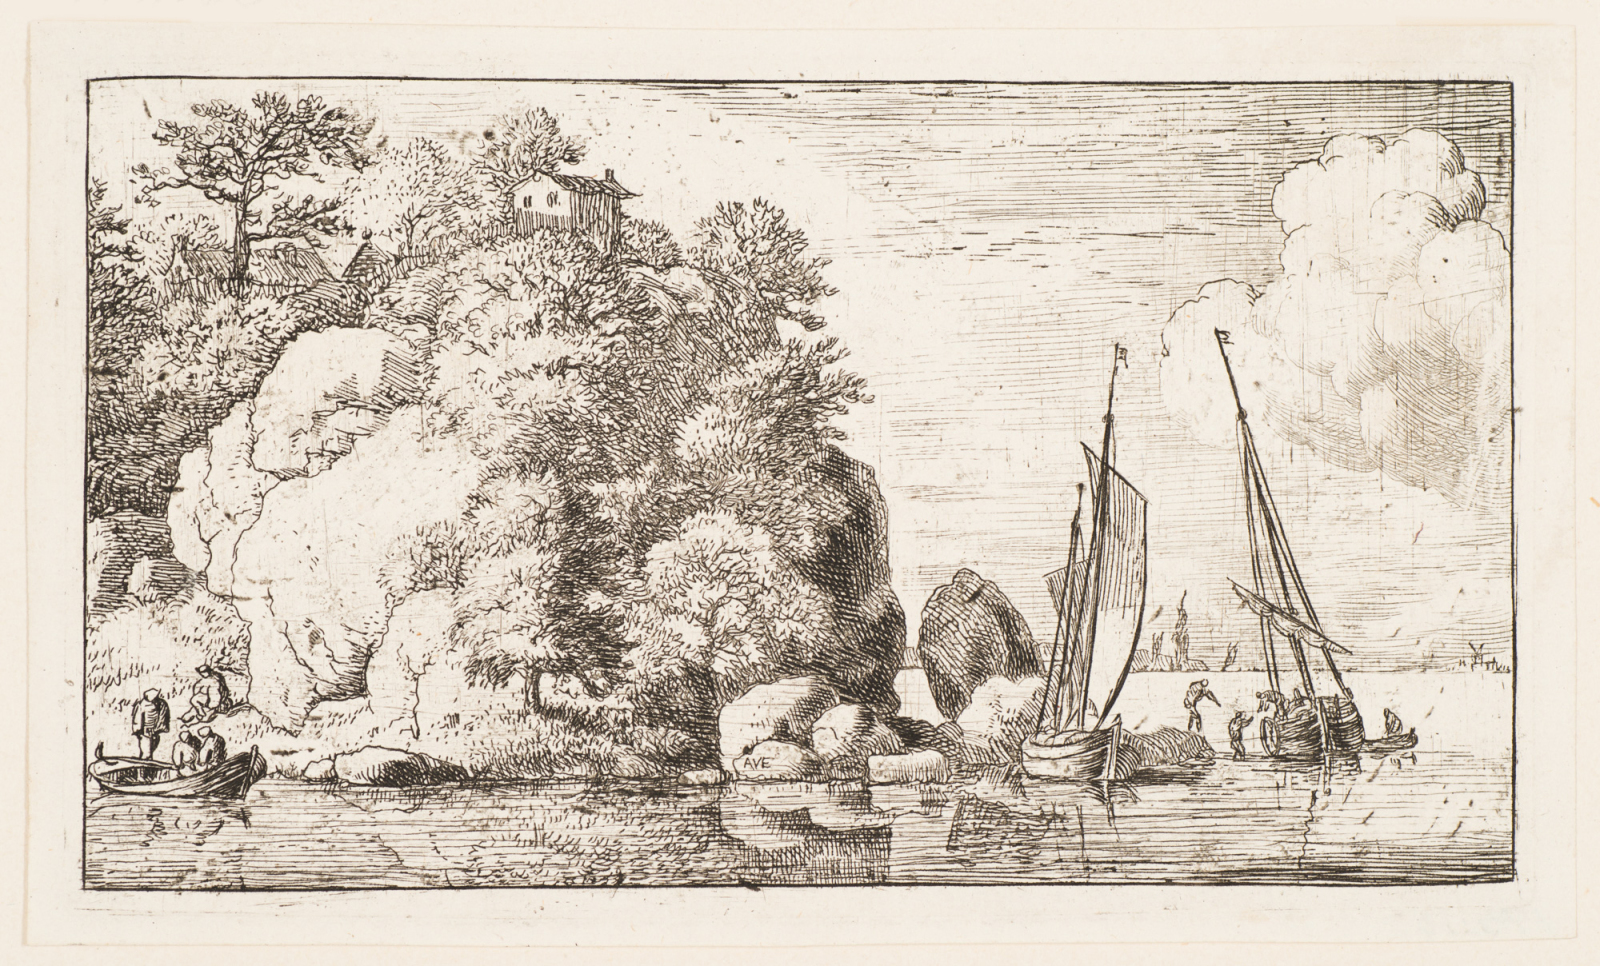 The Two Boats on the River